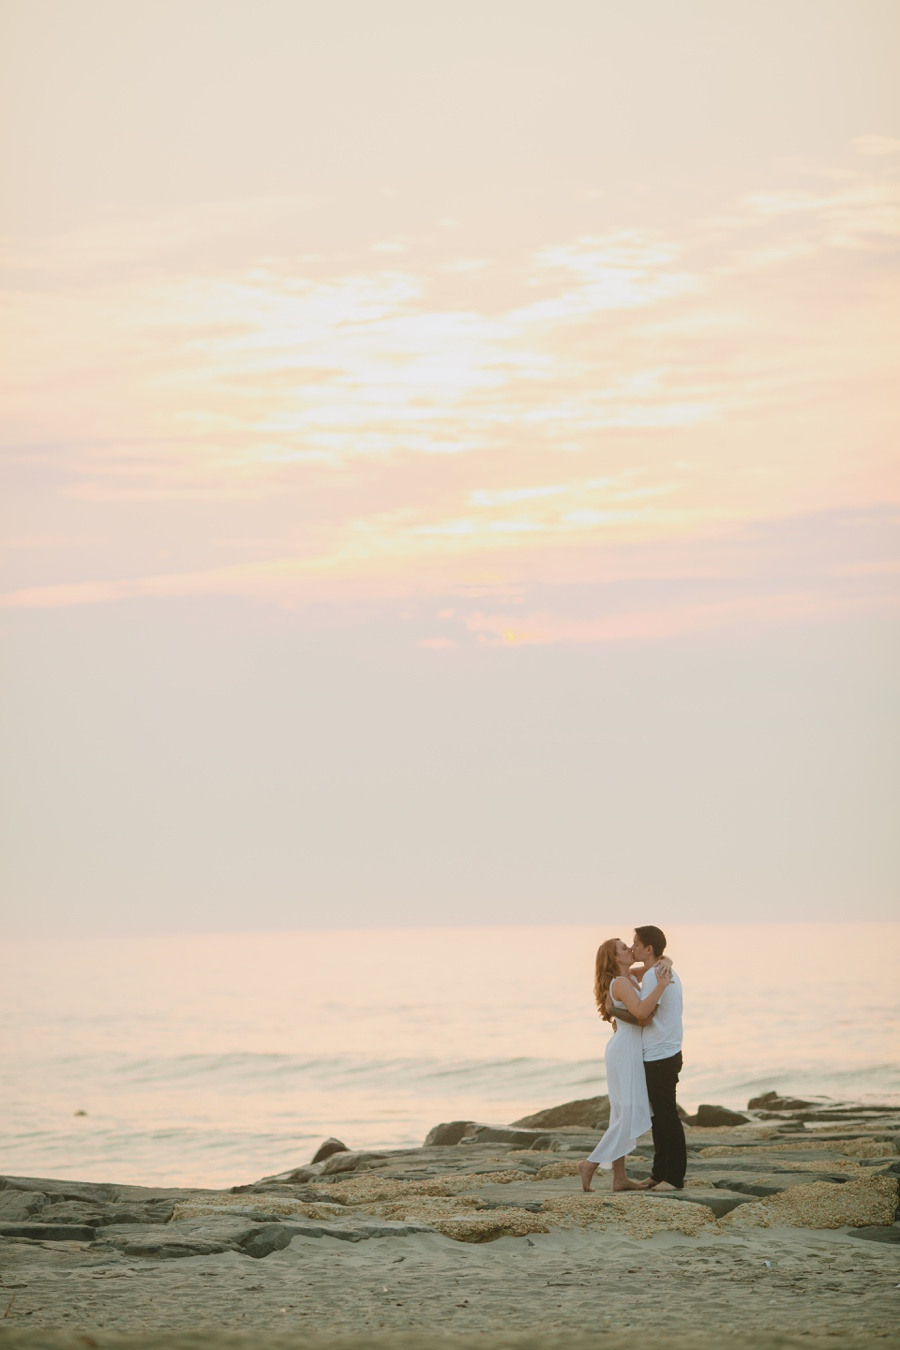 Jersey Shore wedding photography - Romantic beach photos